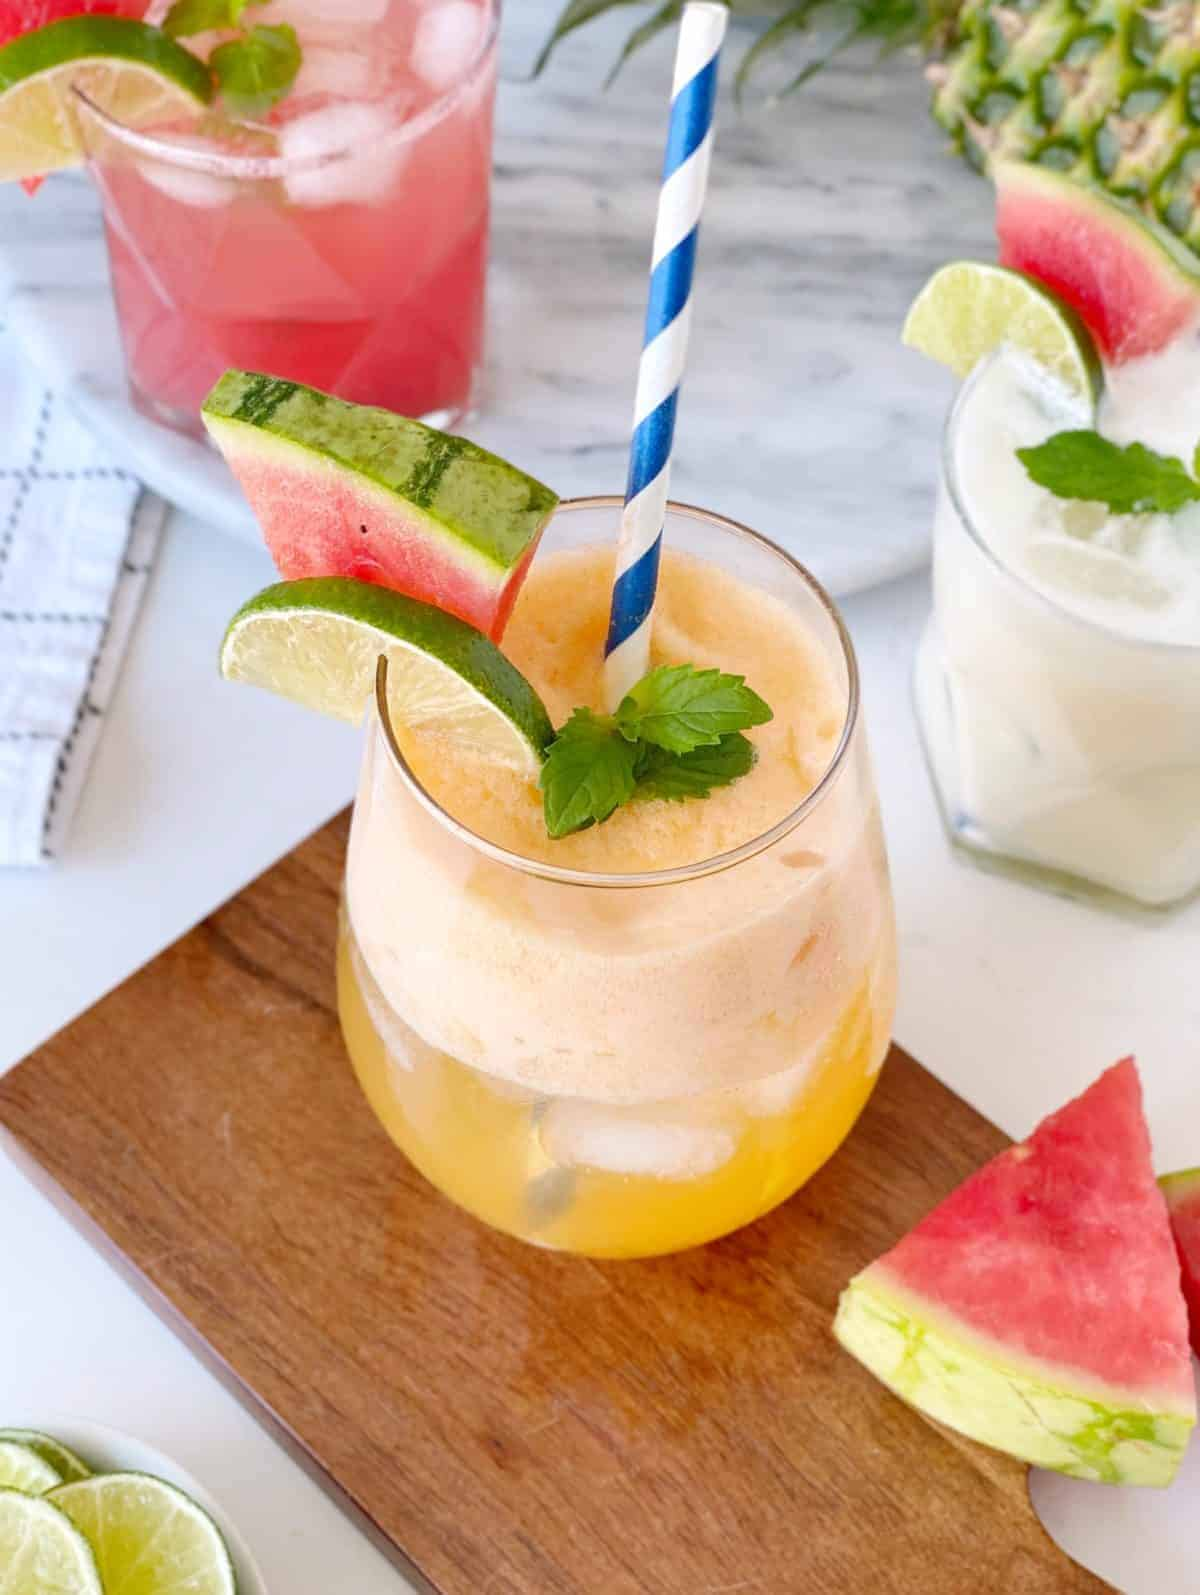 three fruit juices garnished with fruit and straw